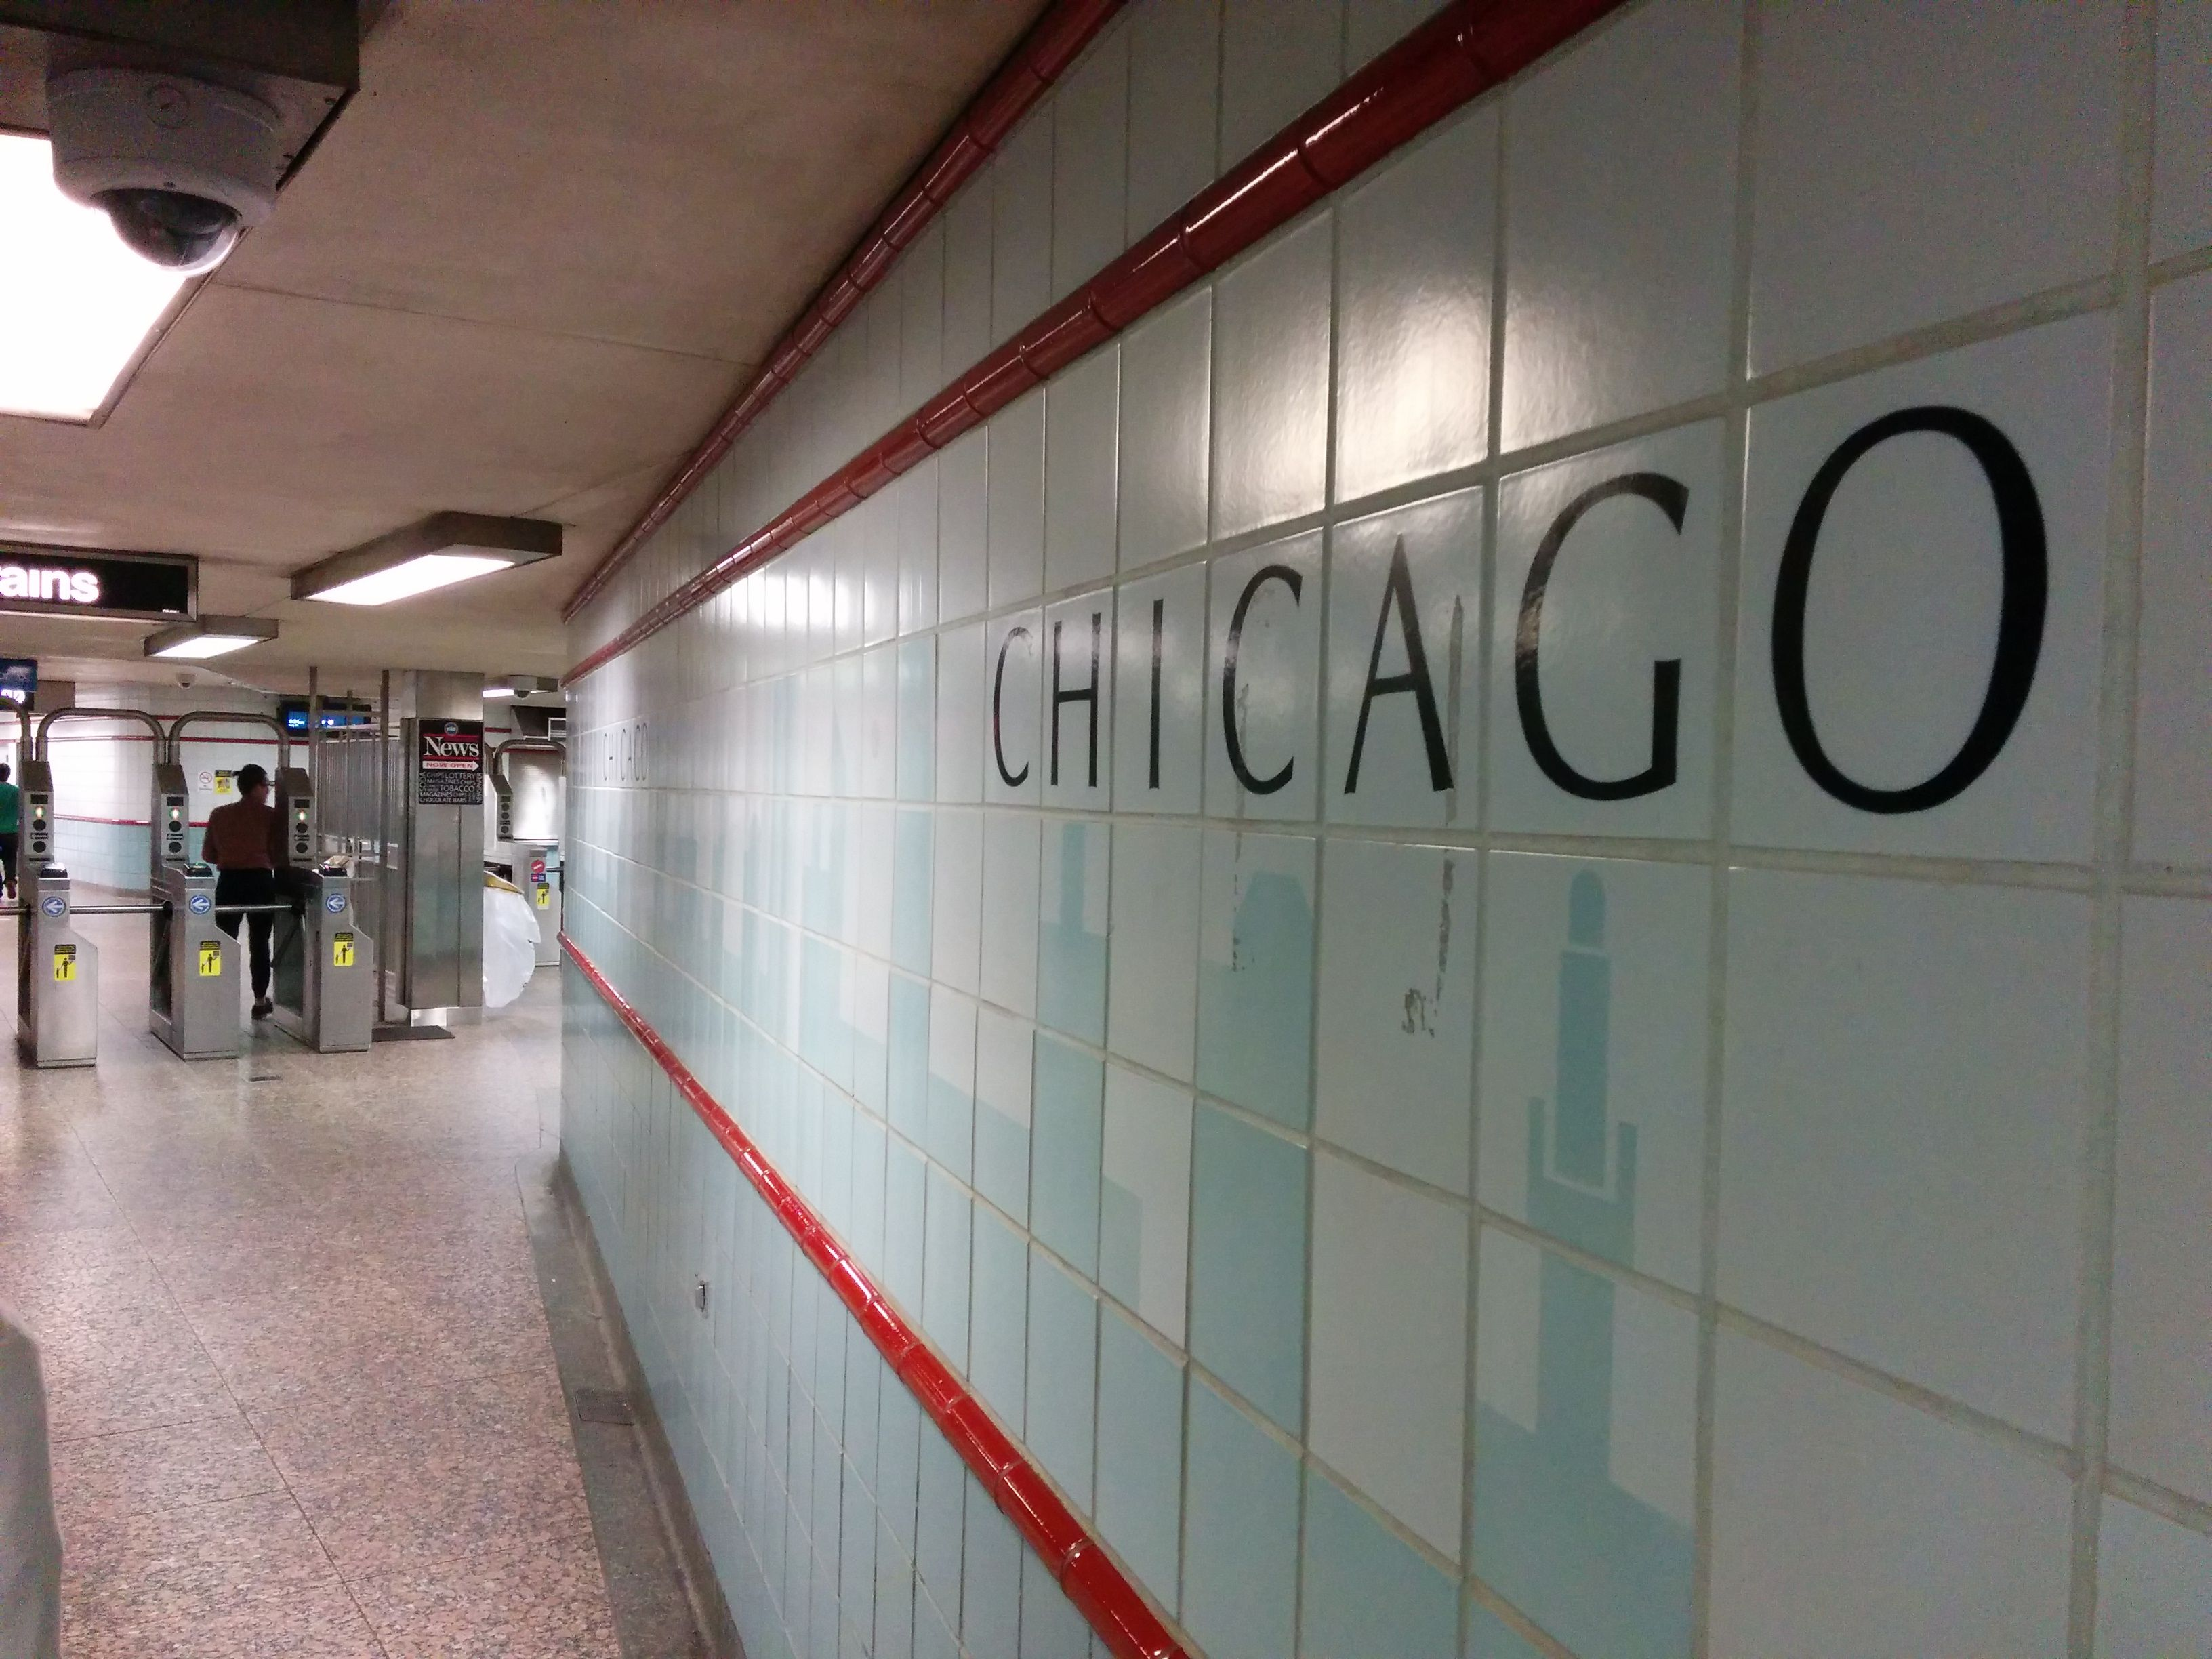 CTA Chicago stop